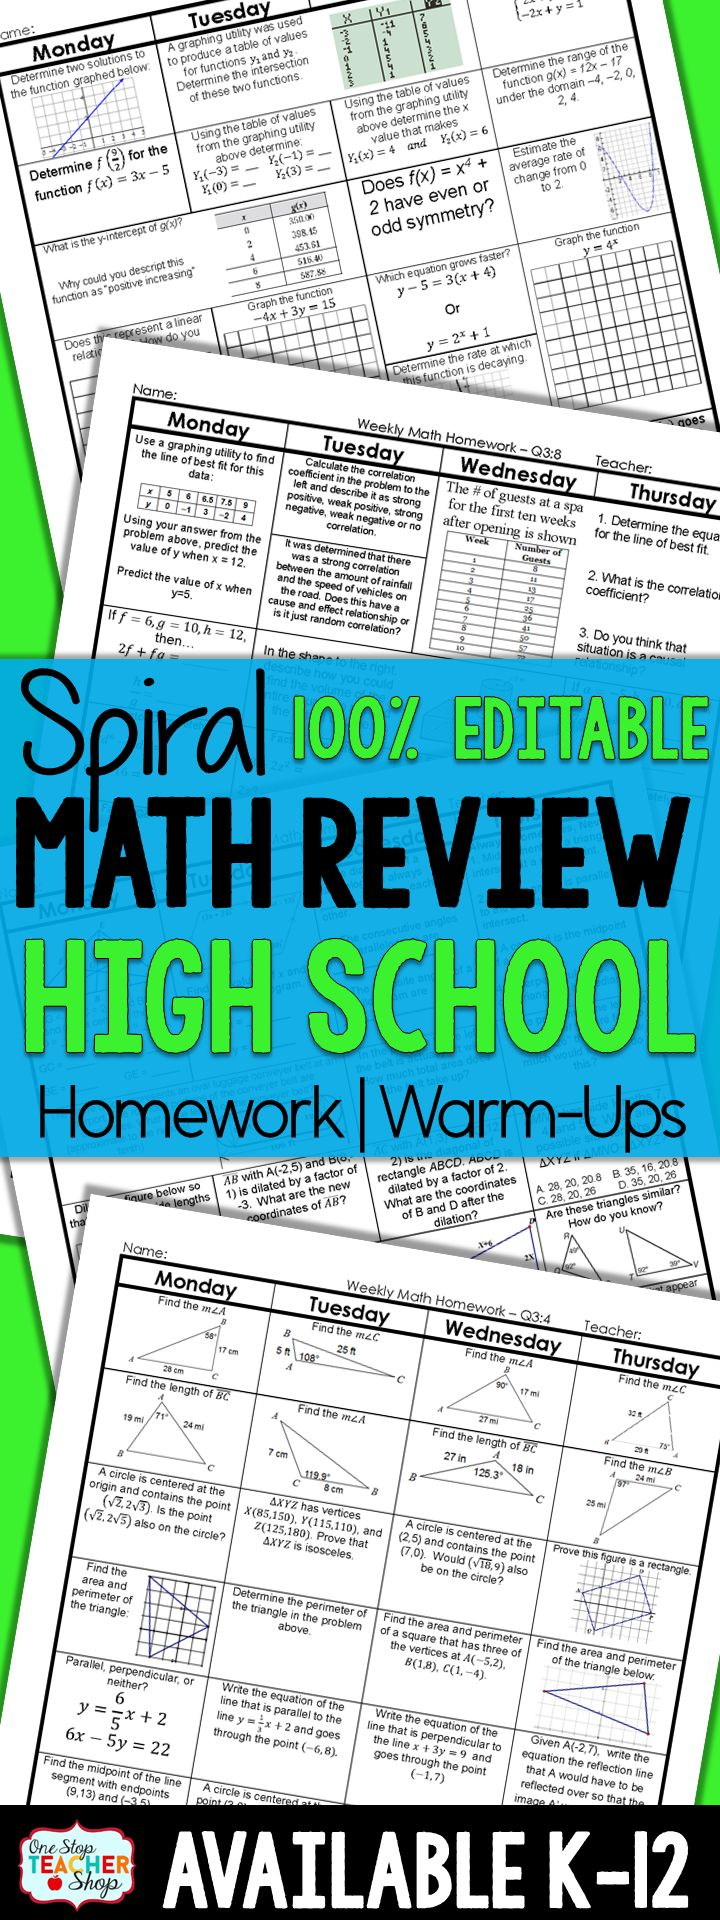 100% Editable Spiral Math Review for High School. This daily spiral review resource can be used for math homework, math warm ups, or even math review. It is 100% Editable and covers the entire year of ninth, tenth, or eleventh grade math. (Algebra 1, Geometry, or Algebra 2) Includes answer keys!